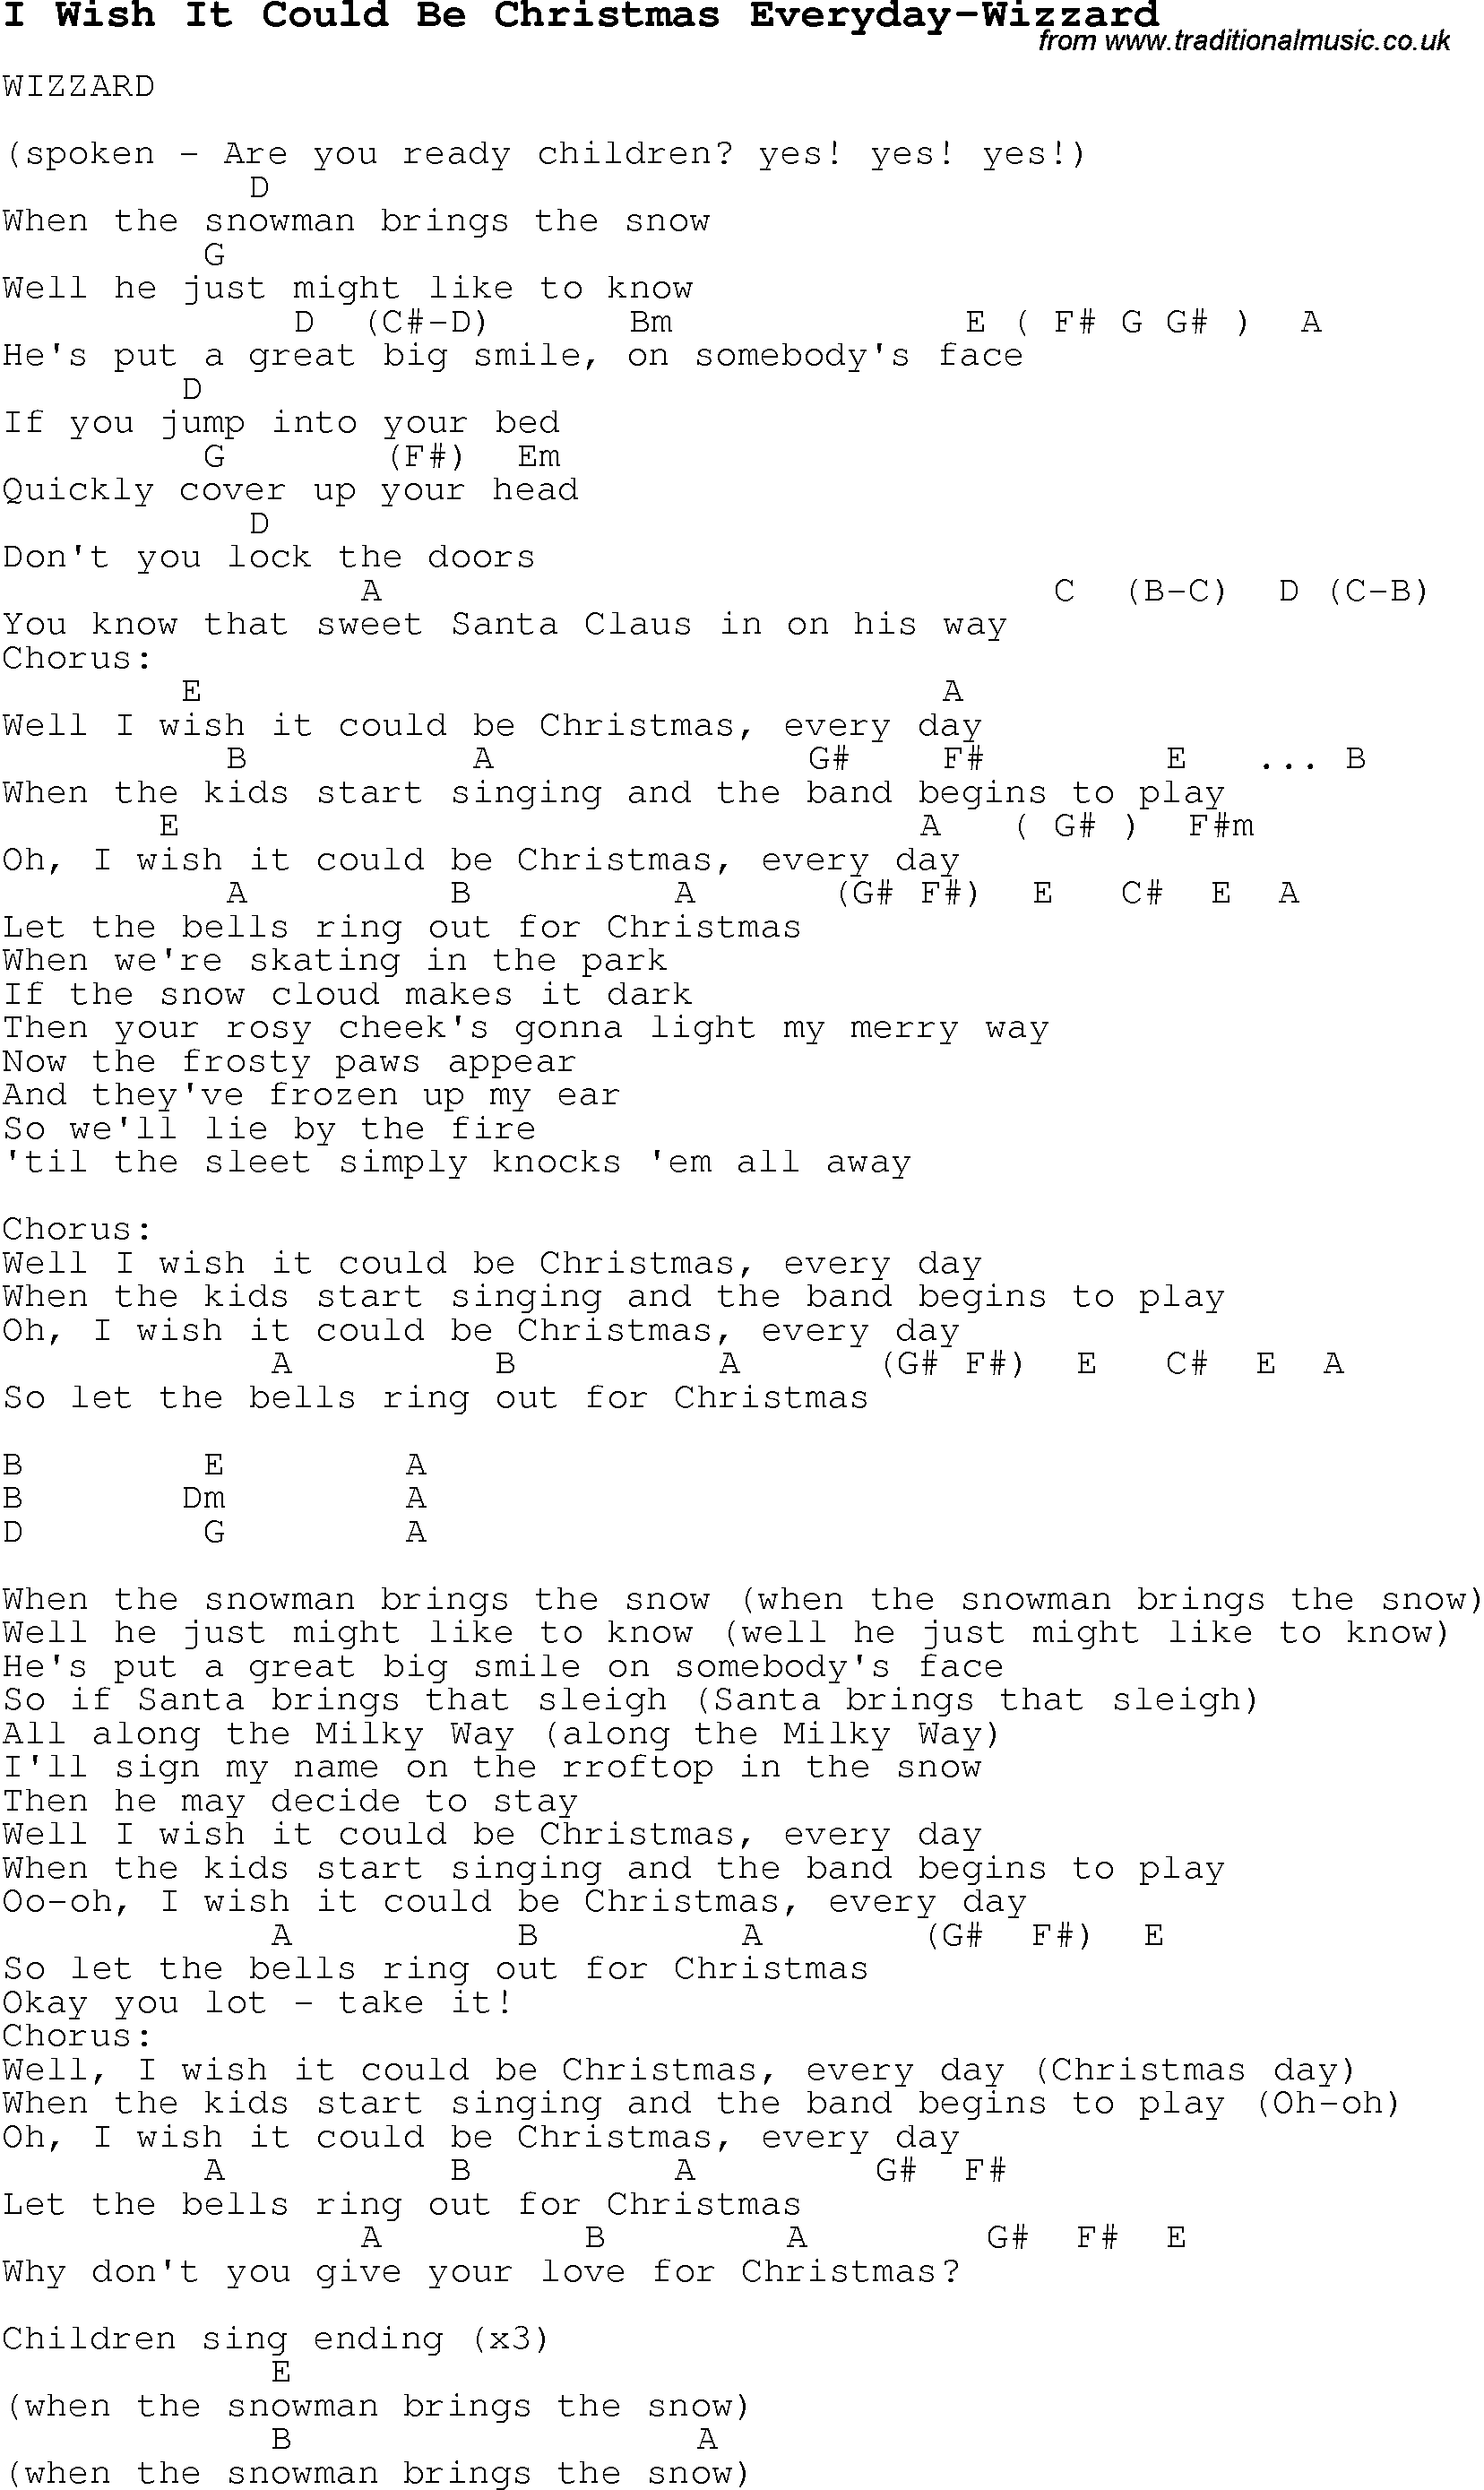 Christmas Carol/Song lyrics with chords for I Wish It Could Be ...